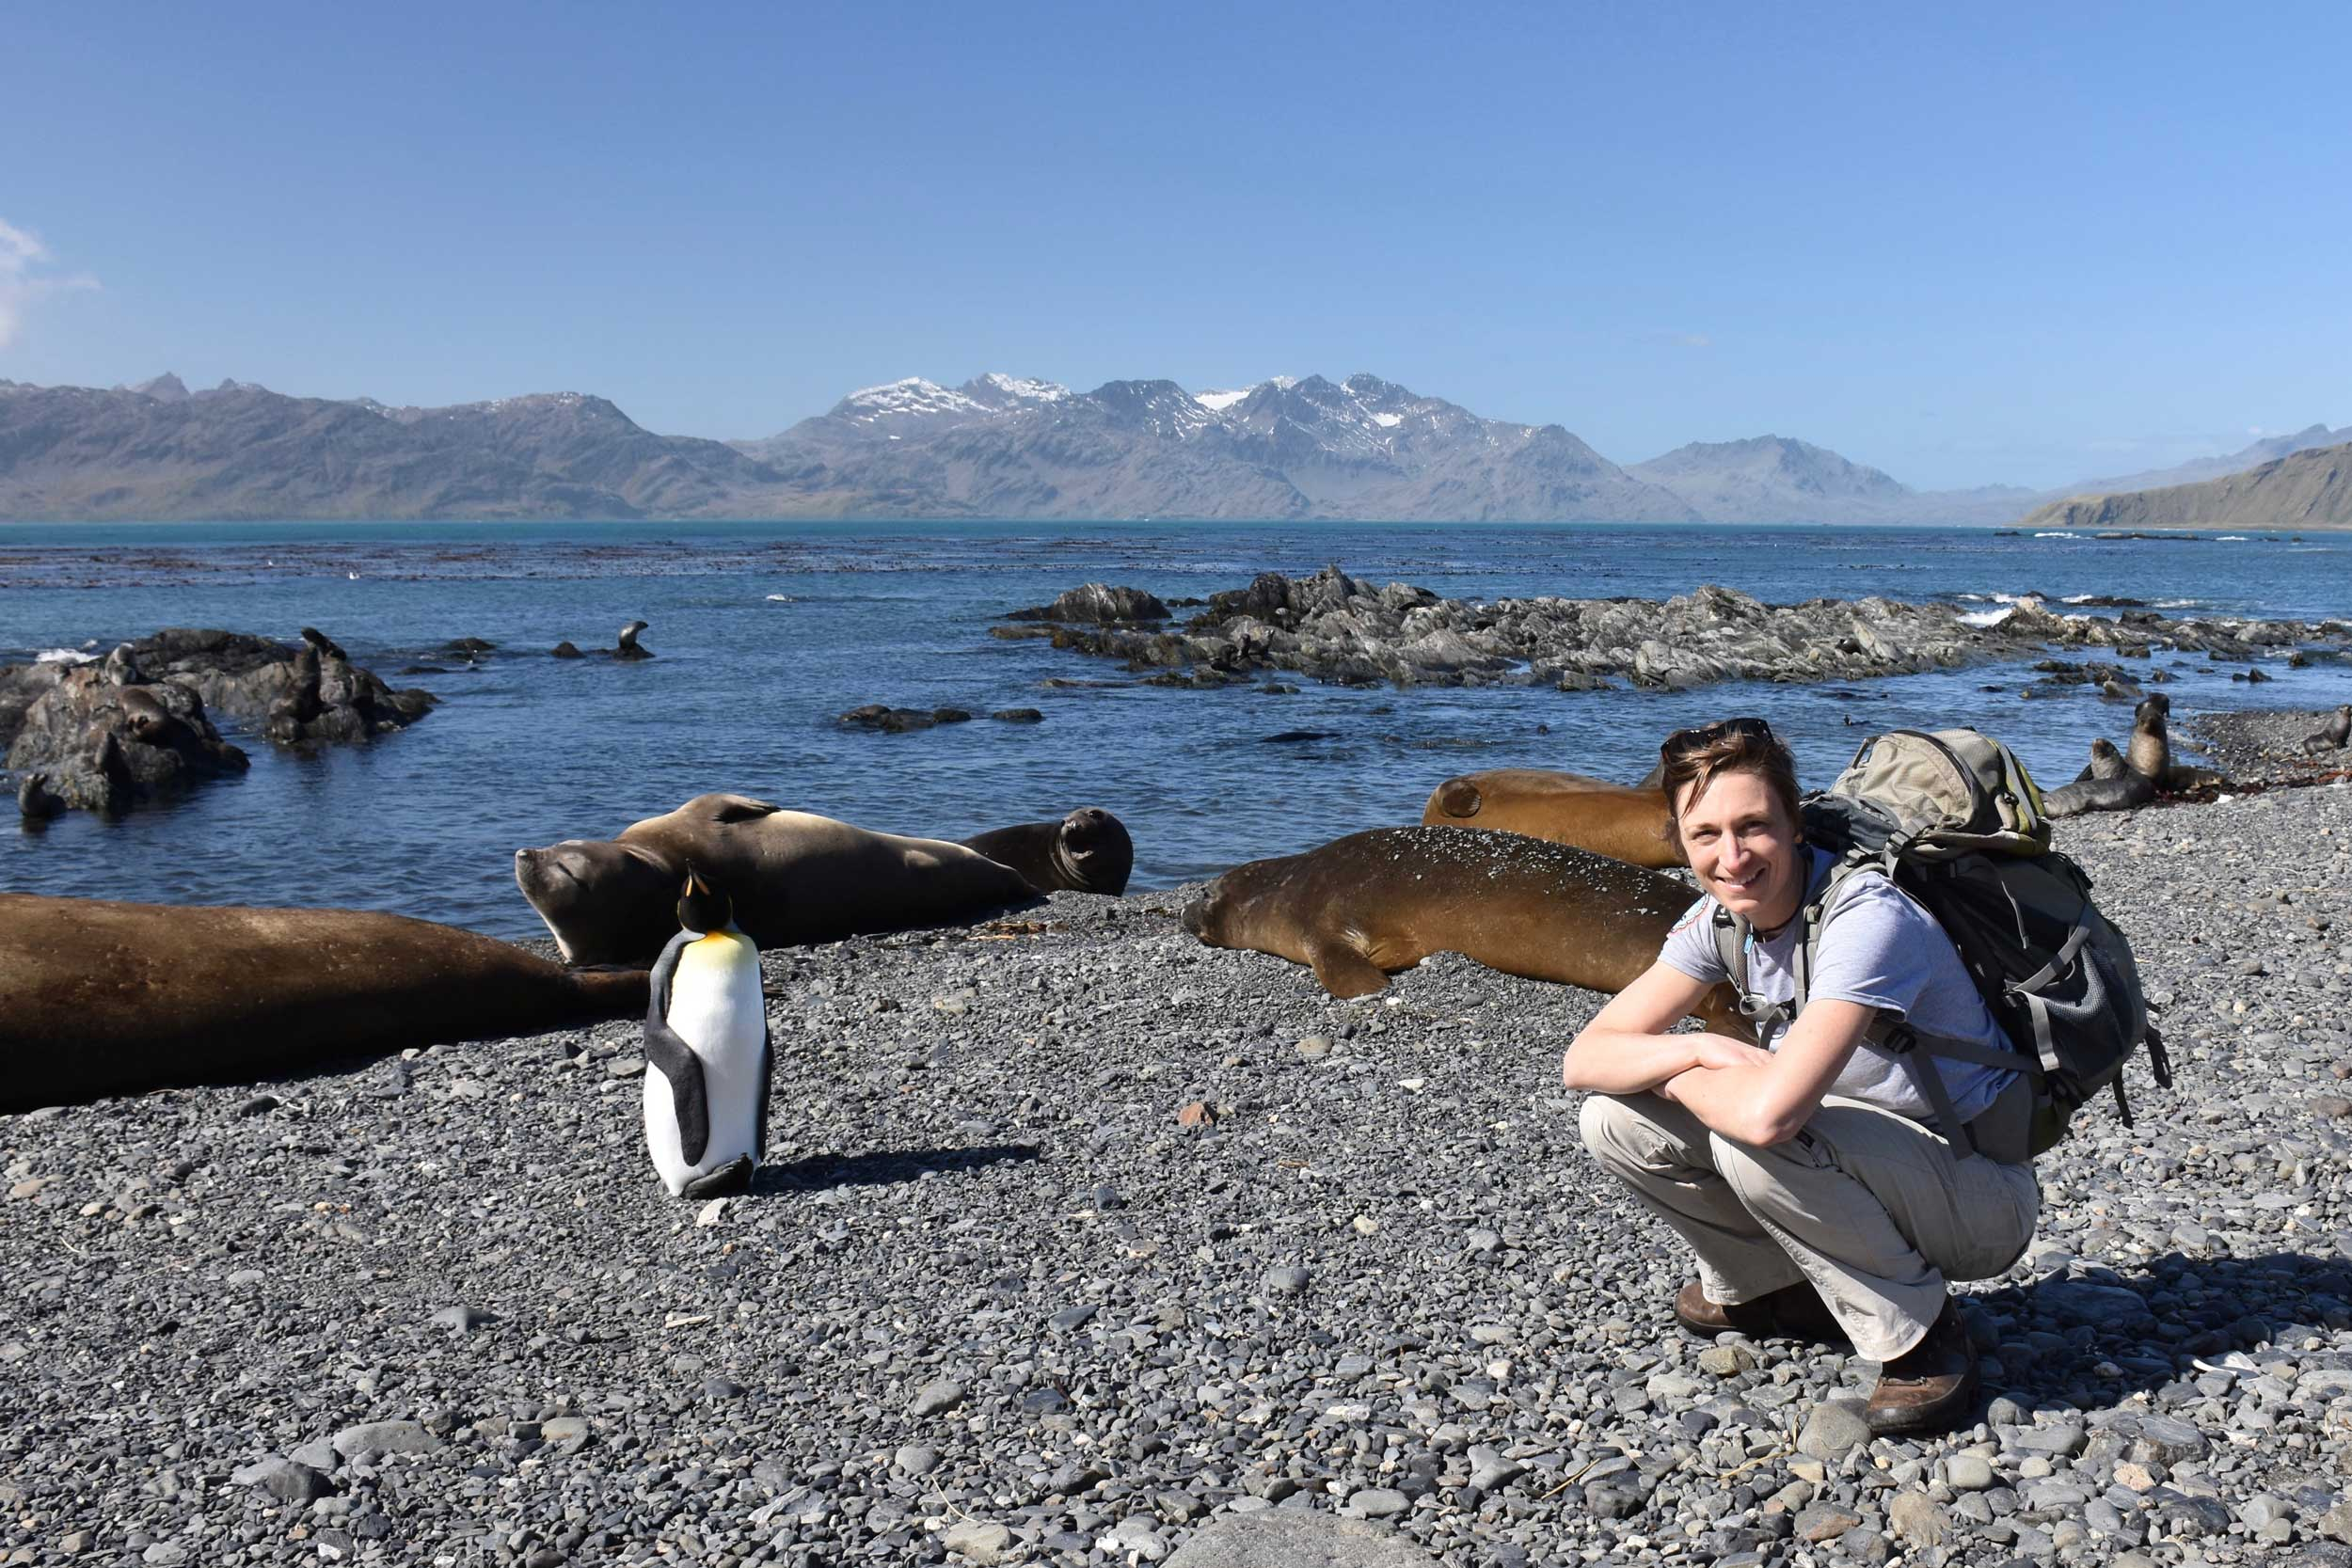 U-M microbiologist Melissa Duhaime on a beach on South Georgia Island with a king penguin and seals. Image credit: Maria Tsukernik